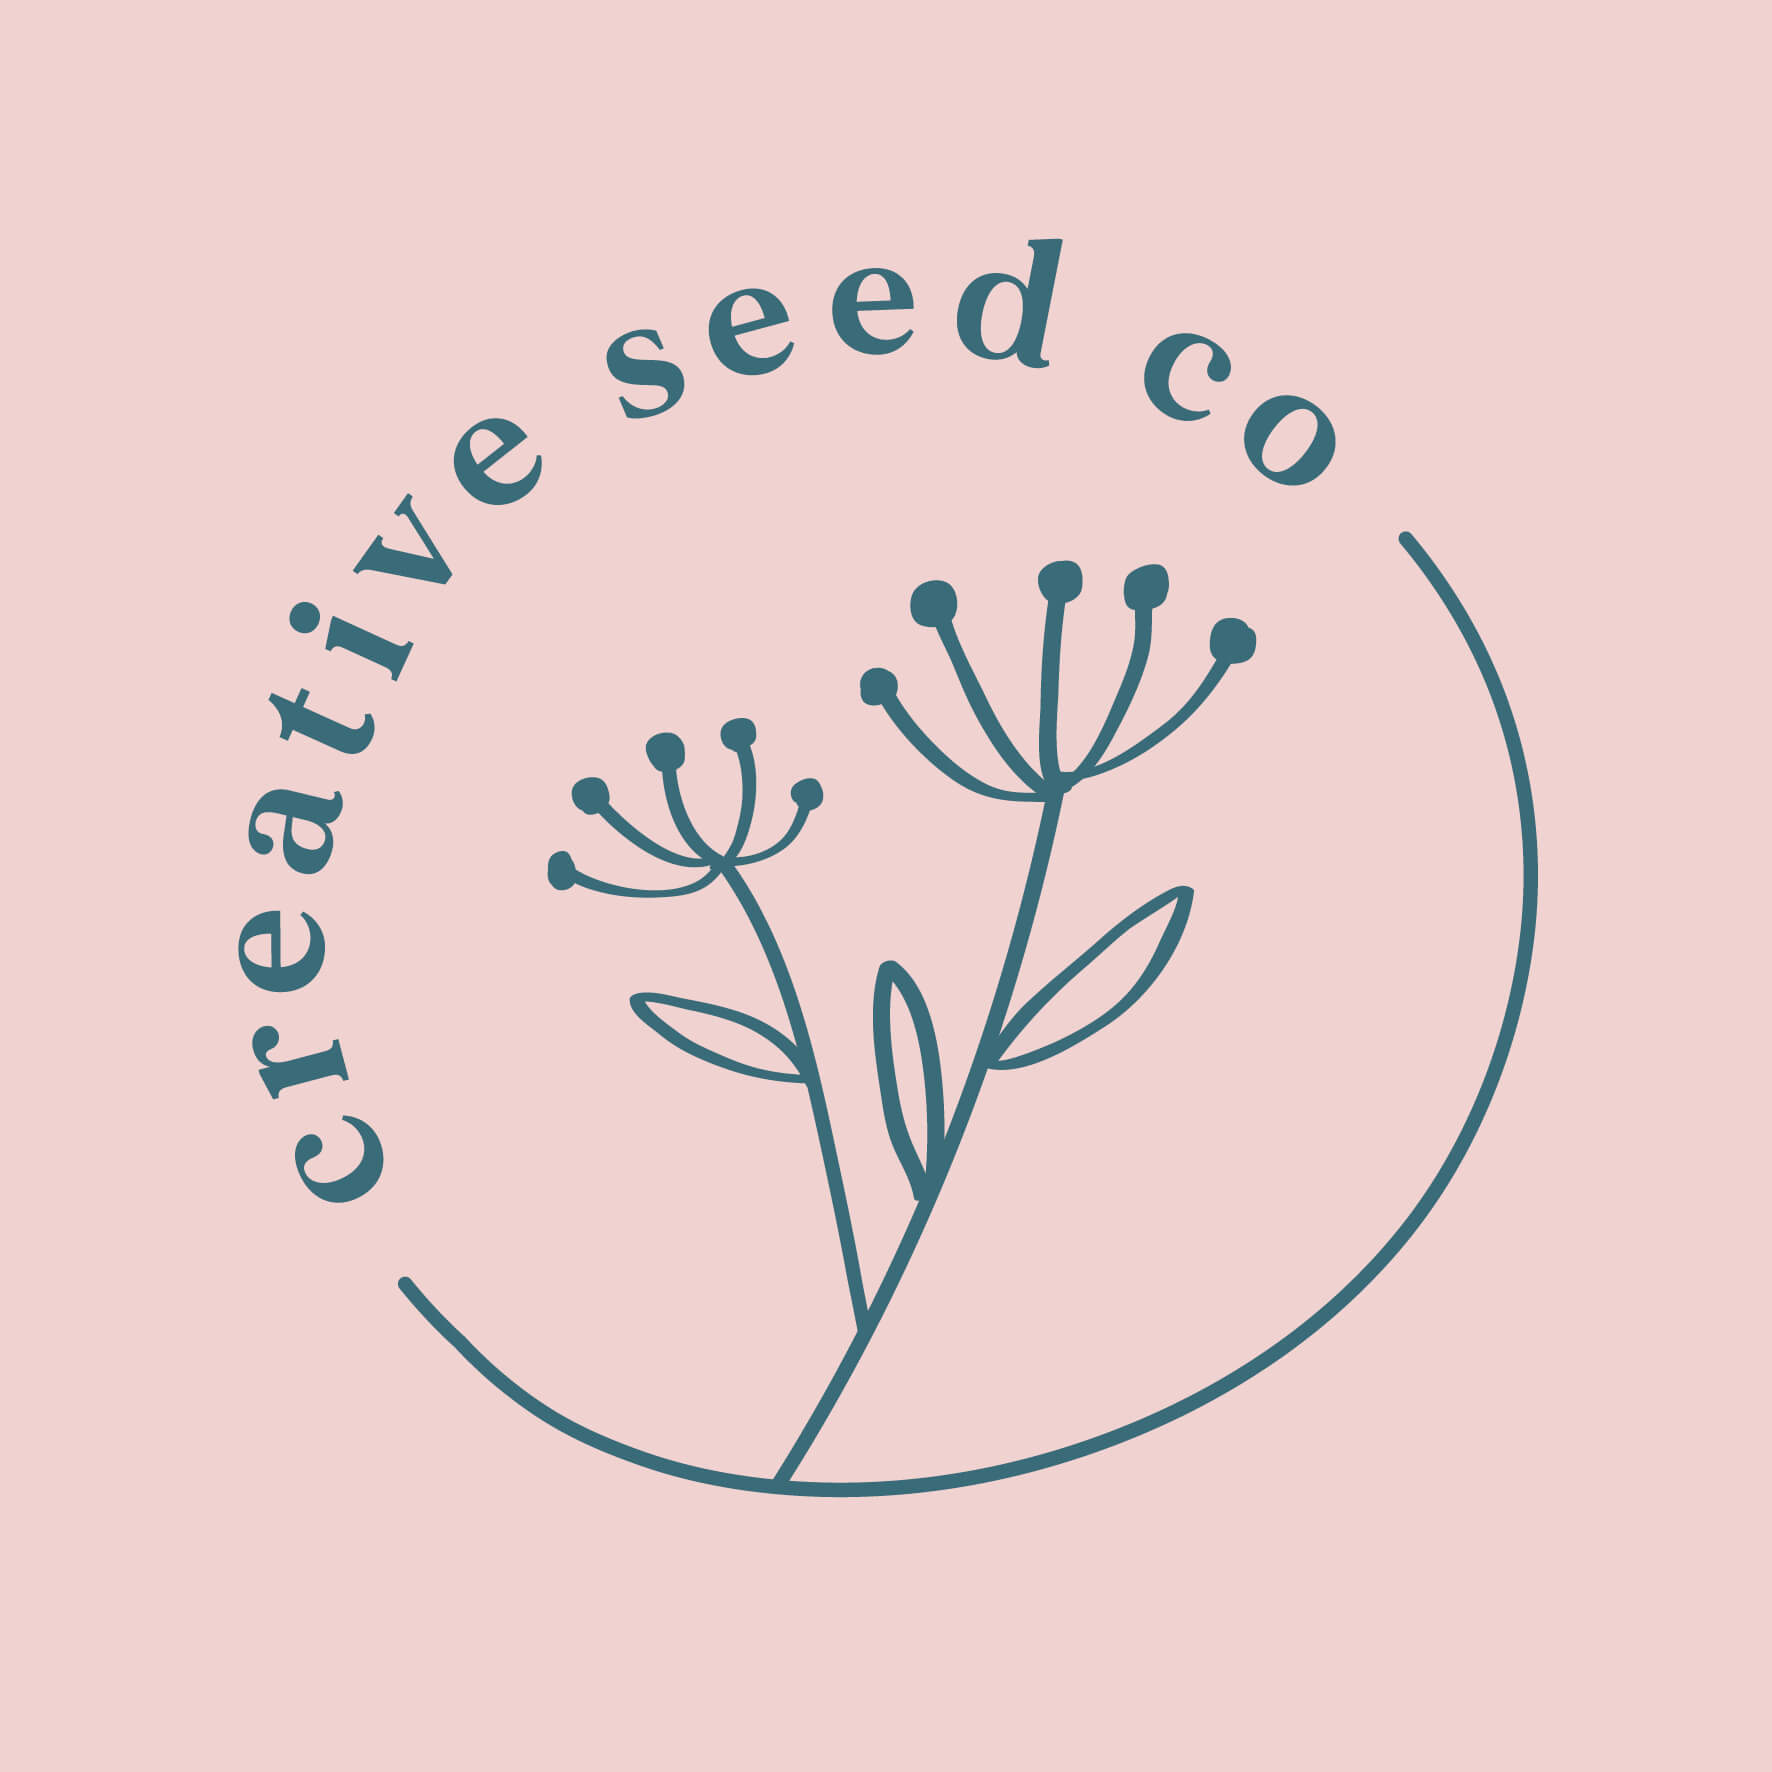 BEC | CREATIVE SEED CO.